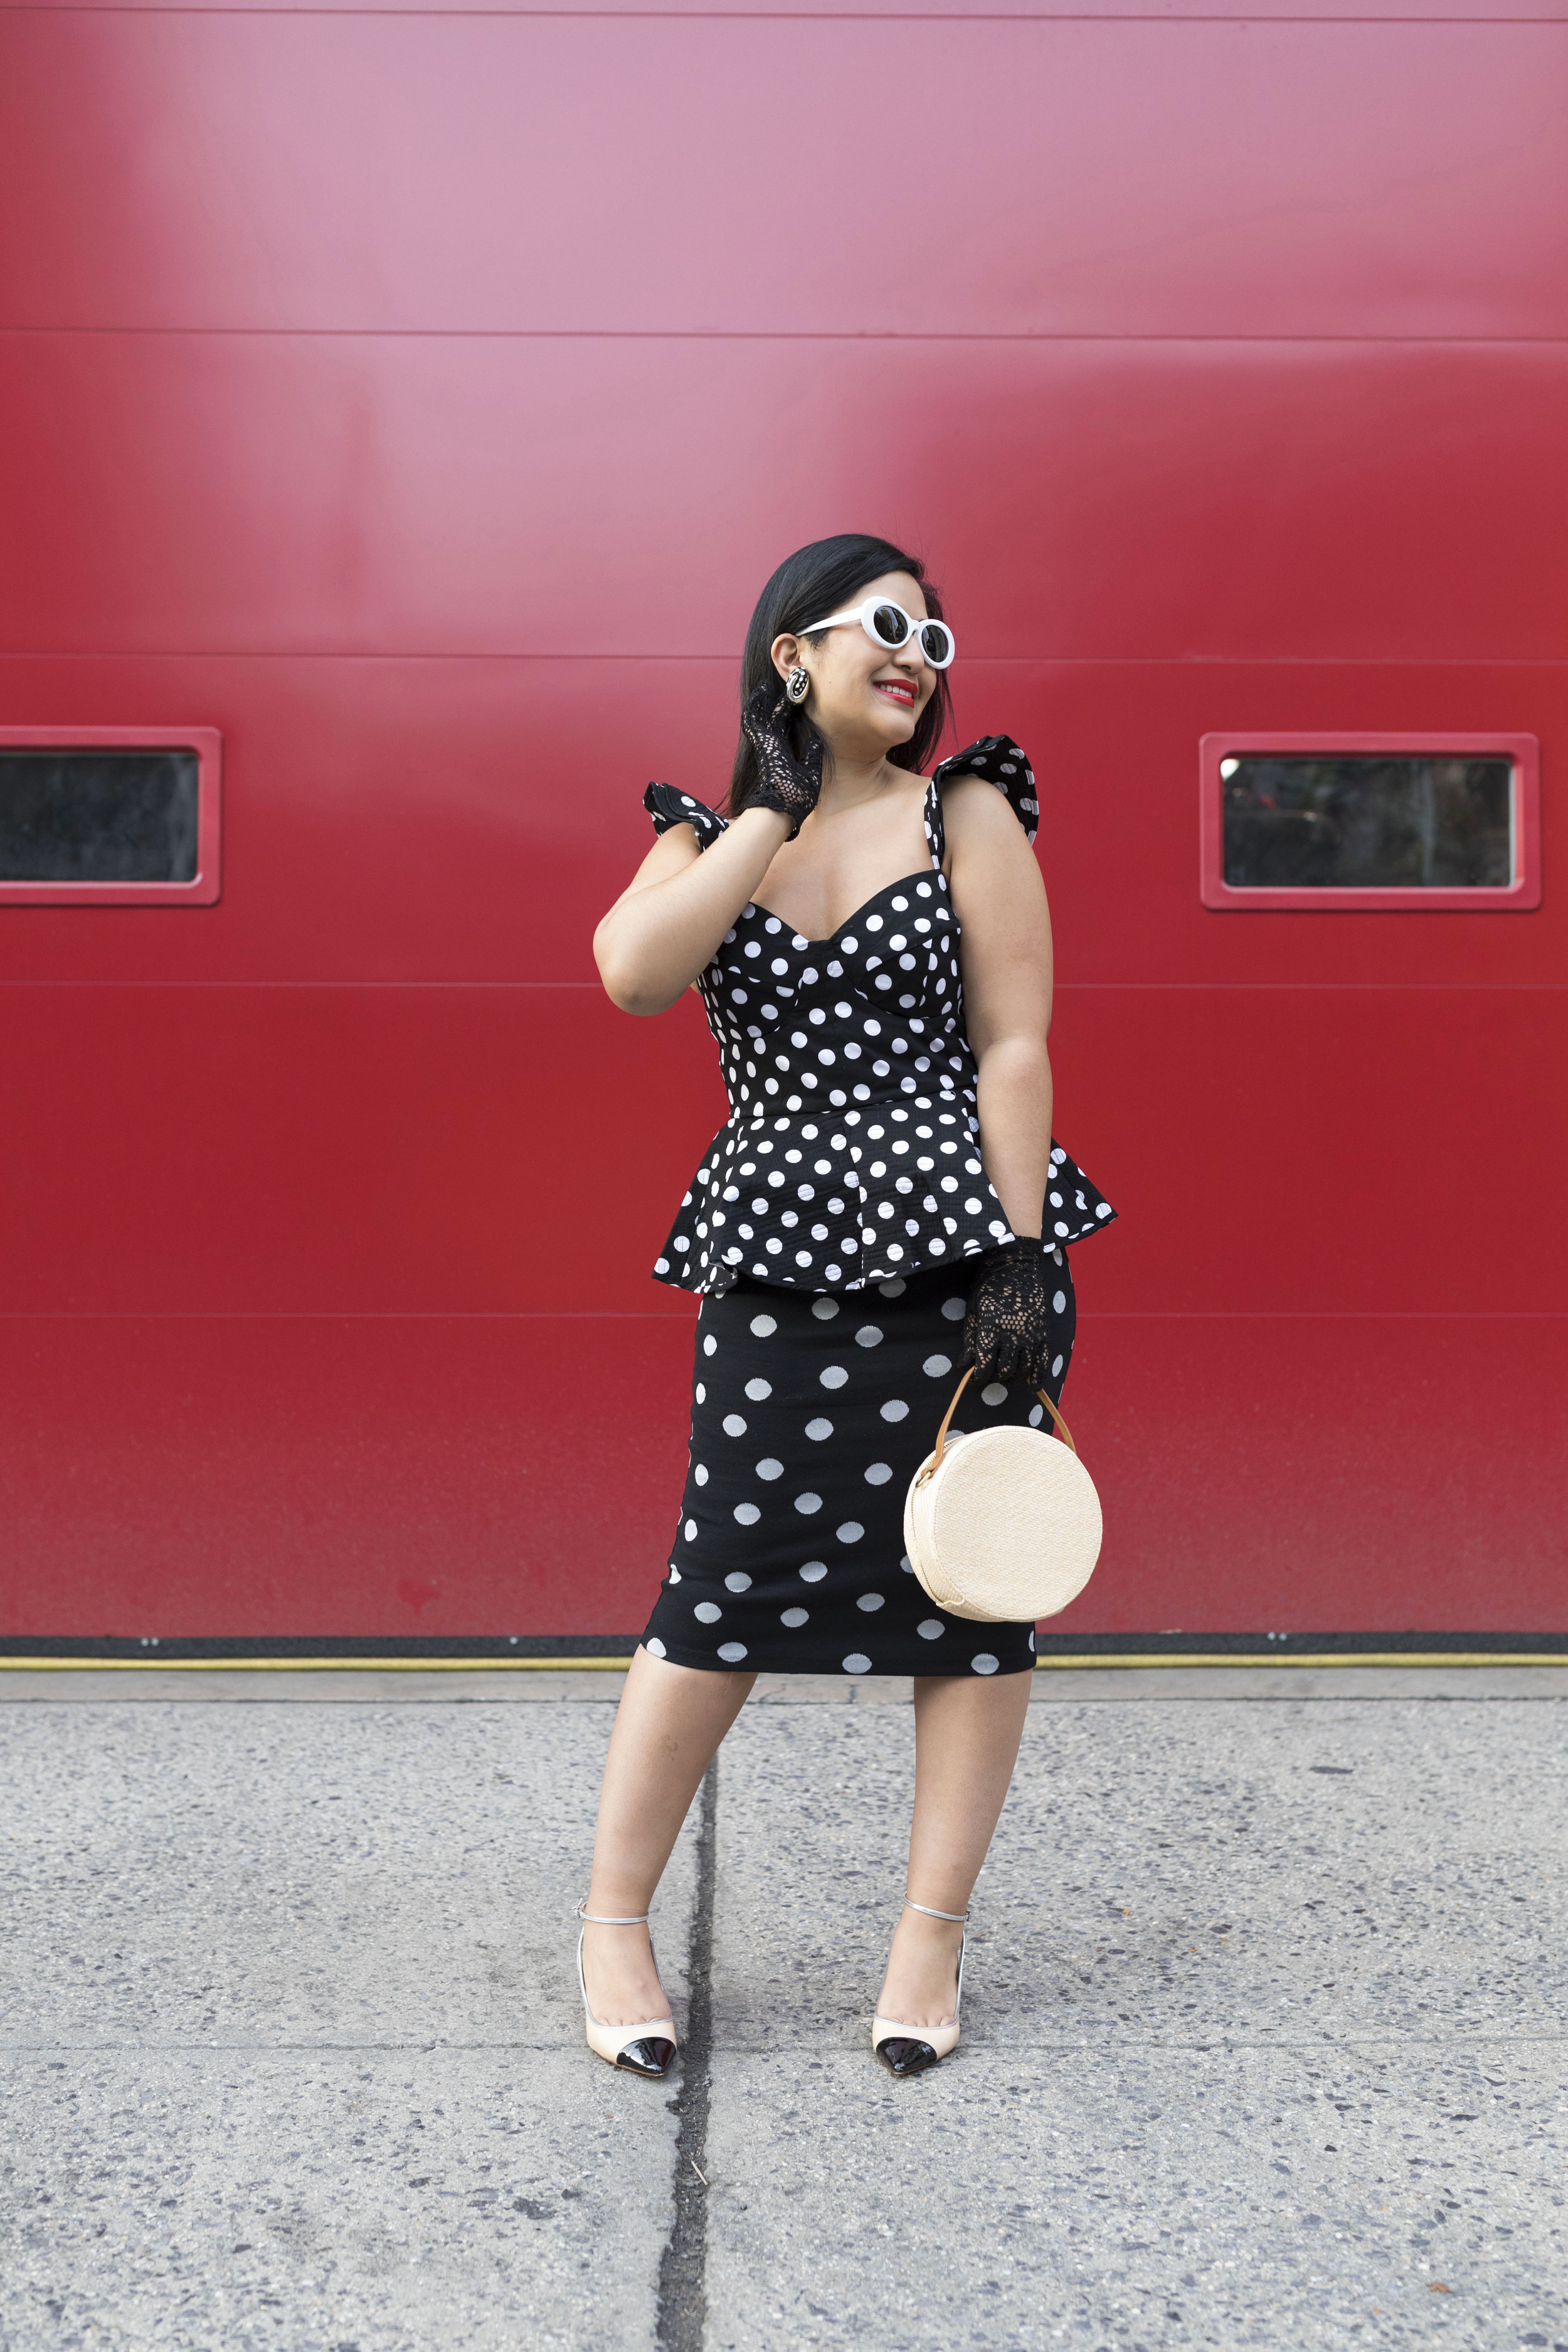 Krity S x Polka Dots x Spring Outfit2.jpg